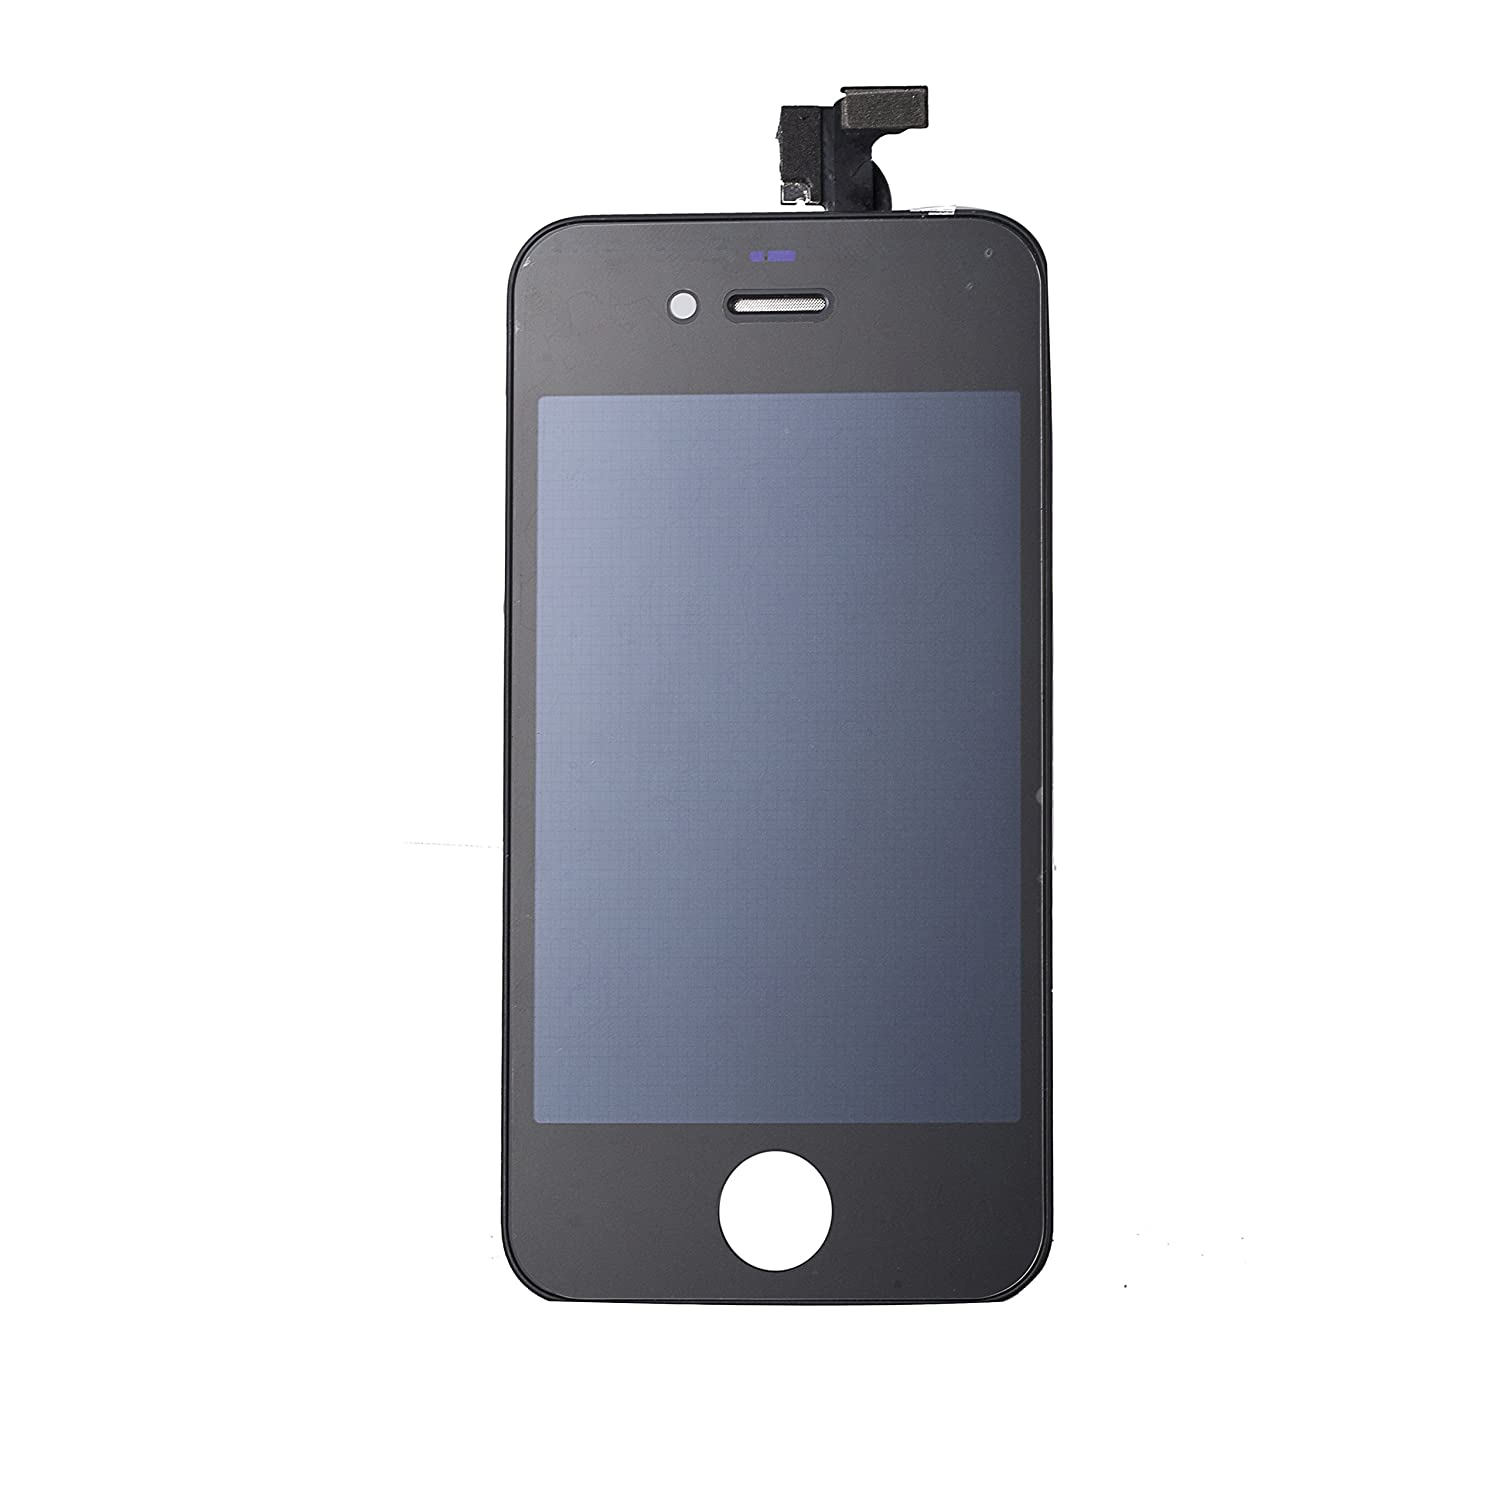 Amazon.com  For iphone 4S LCD Digitizer Glass Touch Screen Assembly  Replacement and Repairing Tools for AT T (GSM) - Black  Cell Phones    Accessories c605e87c31